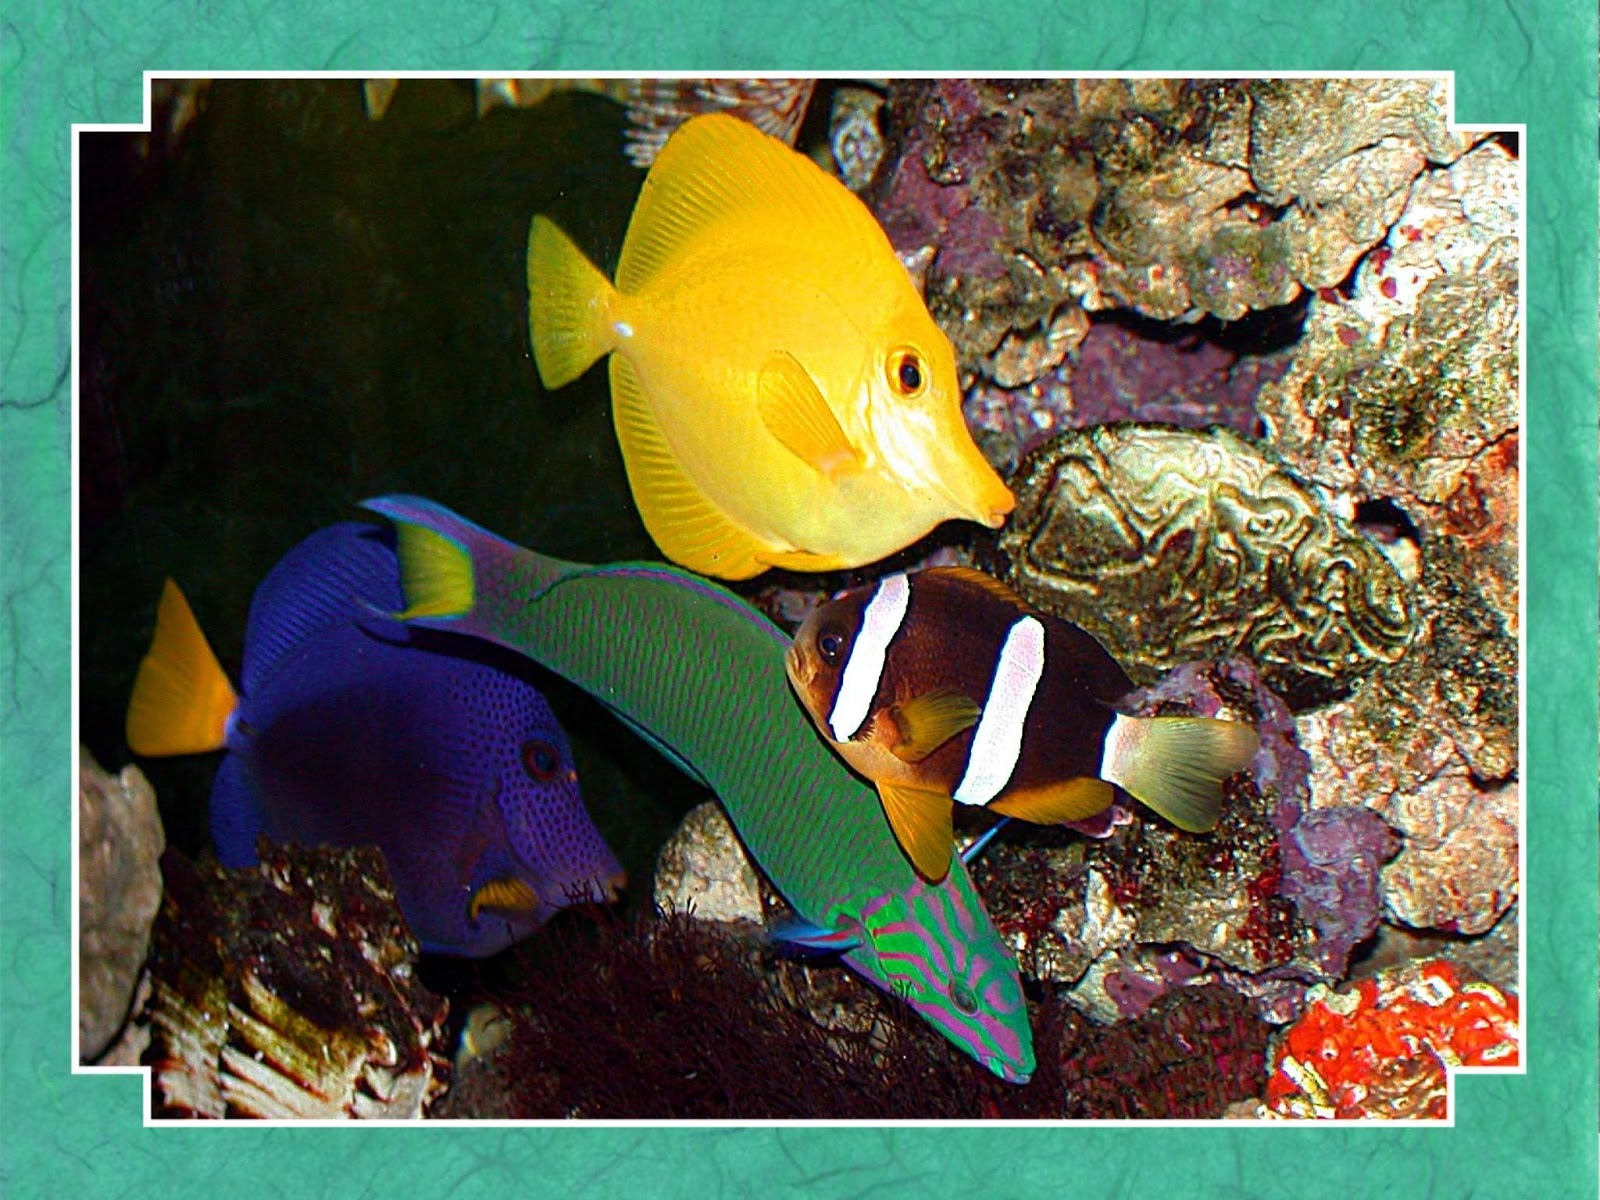 Free wallpaper download tropical fish wallpaper pictures for Exotic tropical fish